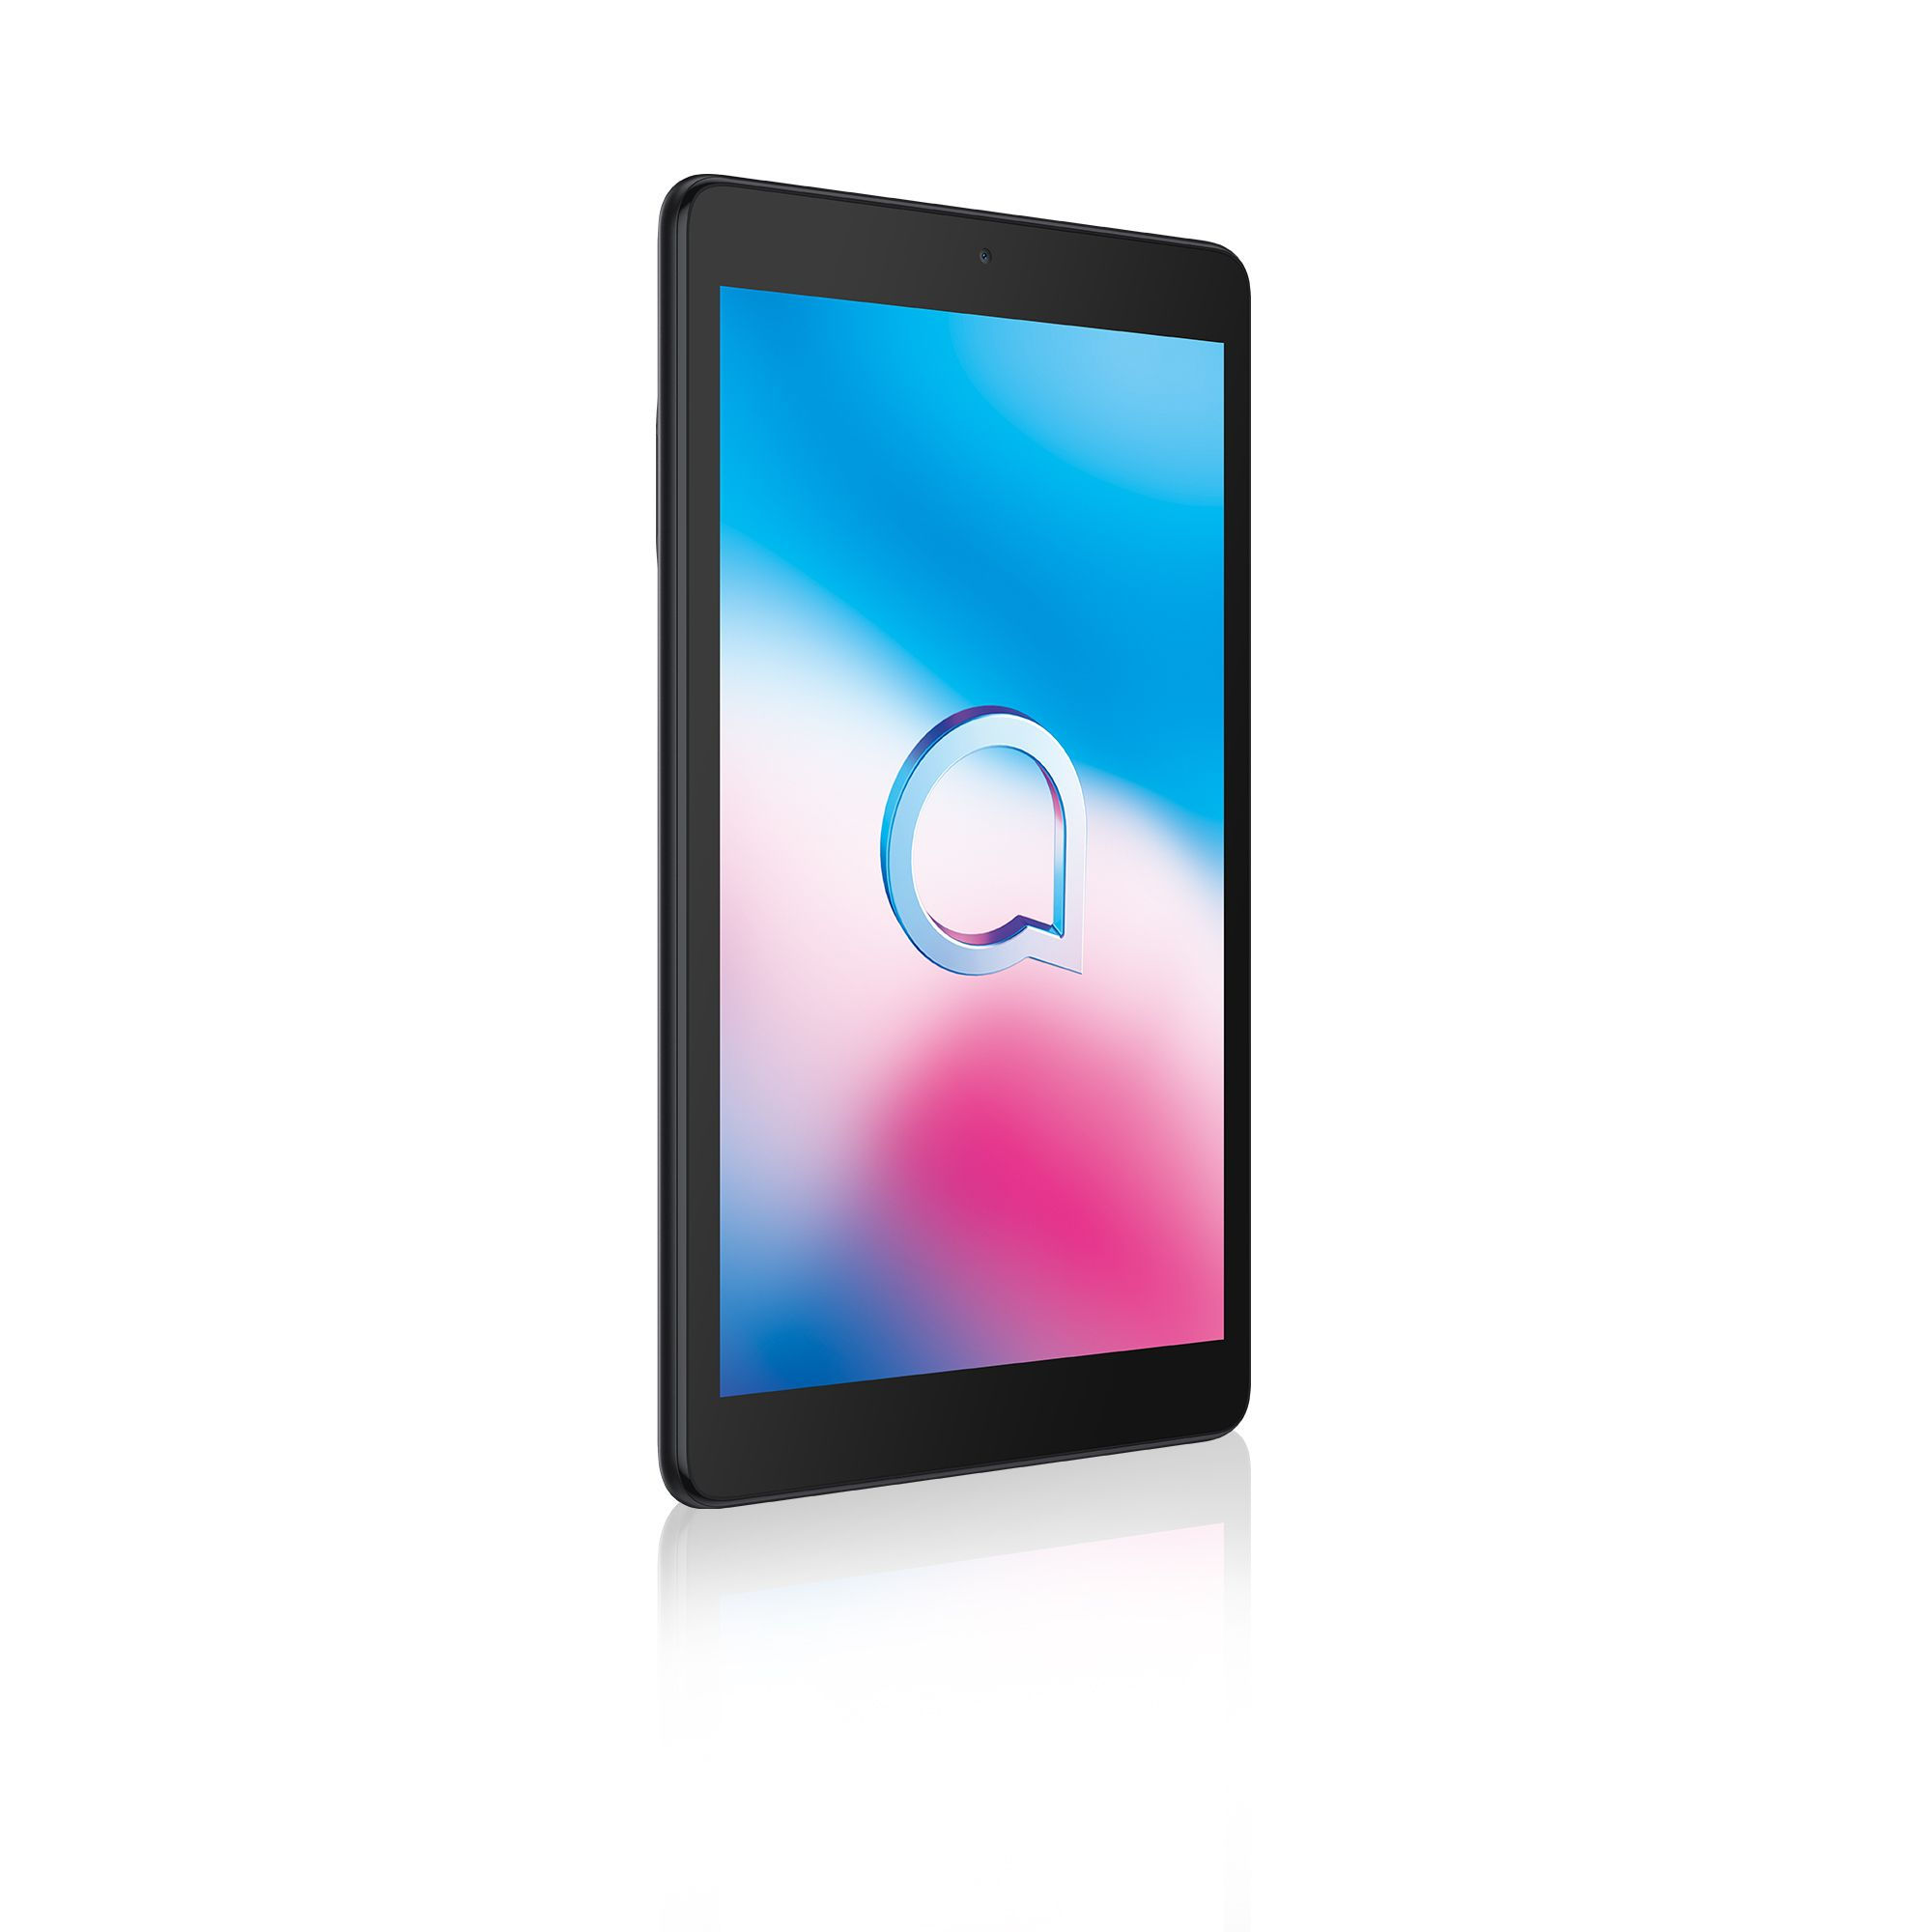 """Image of 9032X Tablet 8"""""""" 4G LTE Android™ 10"""